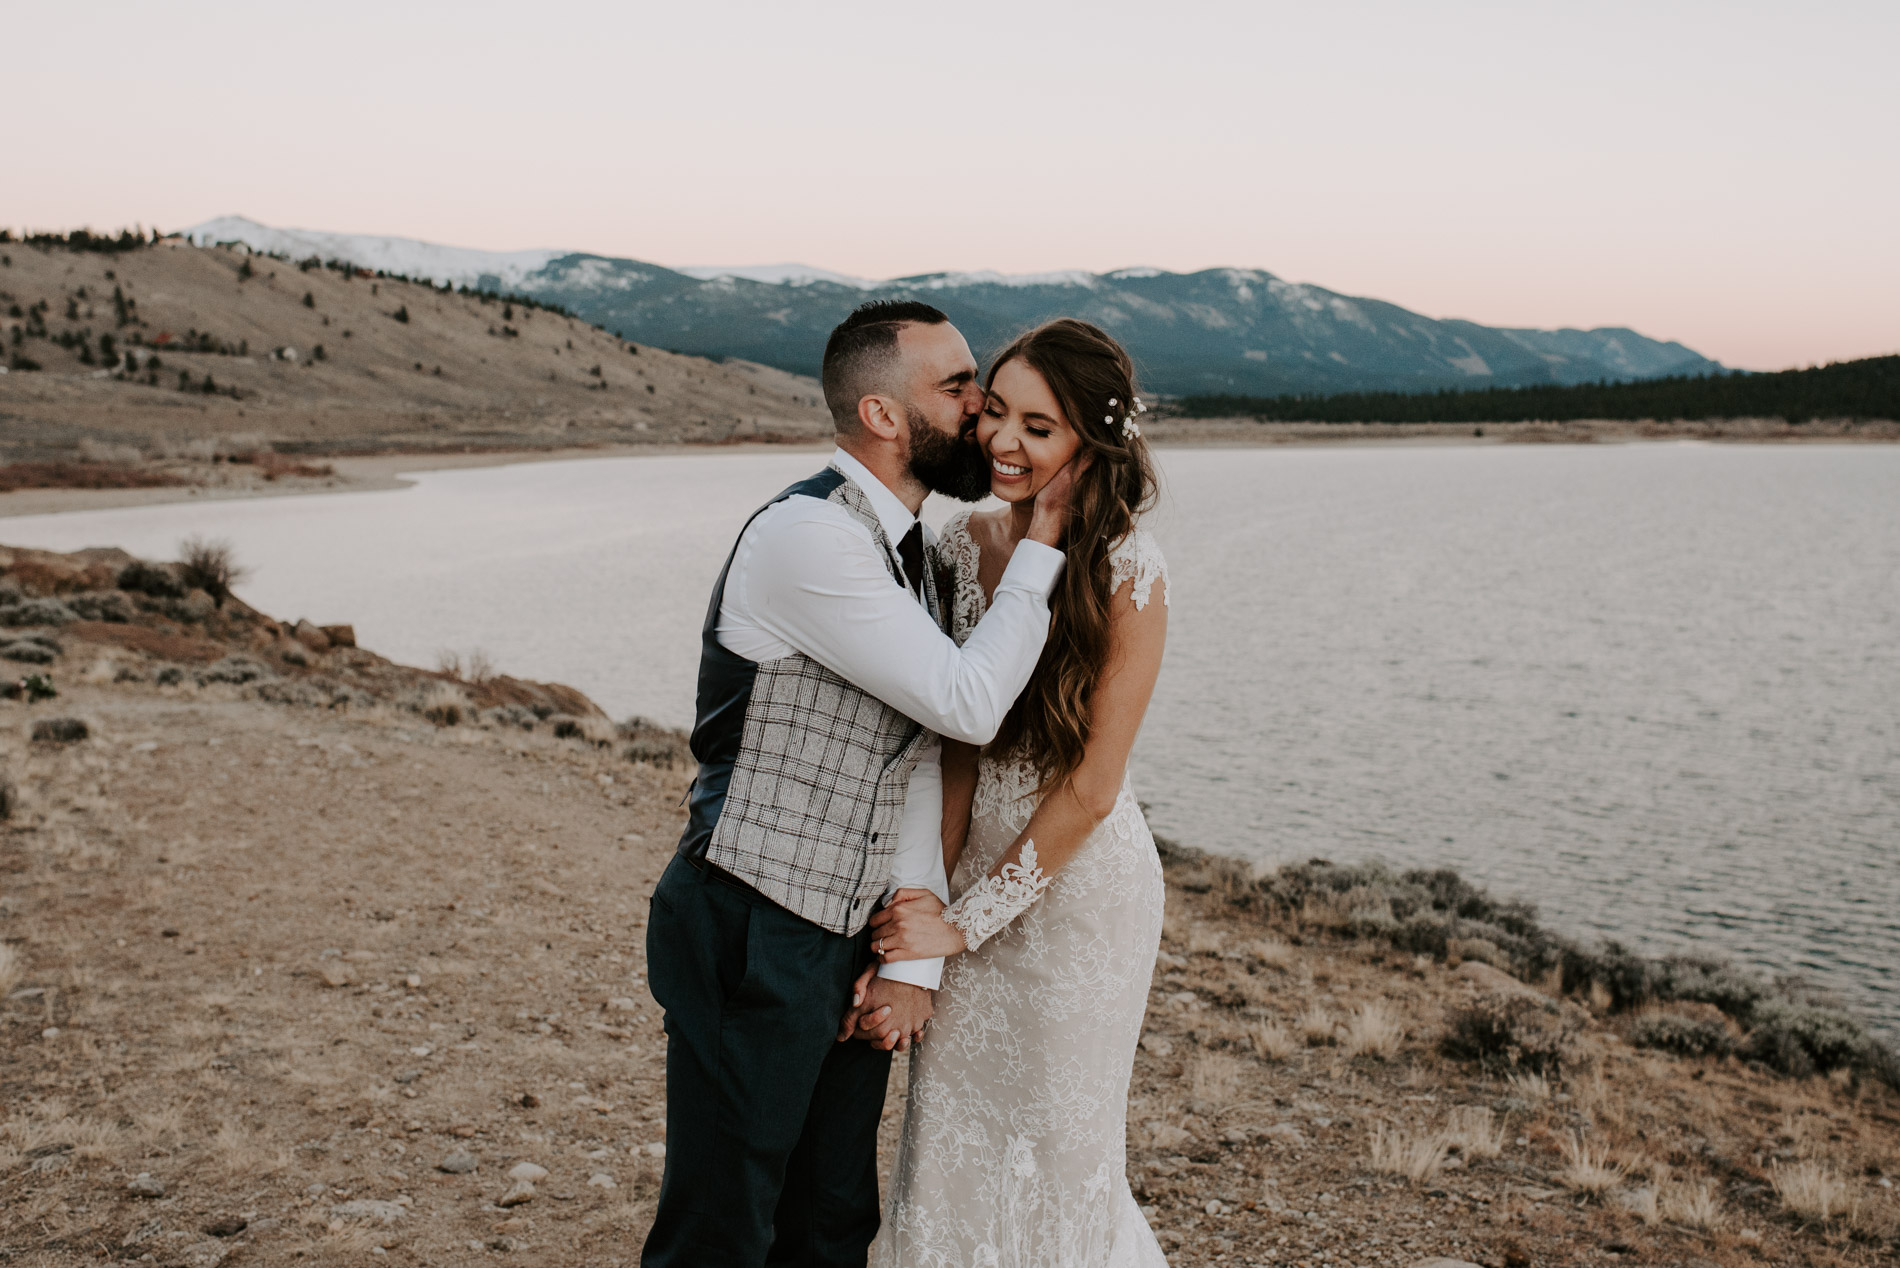 wolf-den-wedding-wolf-den-twin-lakes-aspen-wedding-aspen-wedding-photography-Adventure-elopement-photographer-Adventure-wedding-photographer-Destination-wedding-Destination-elopement-Destination-wedding-photography-Destination-wedding-photographer-Teresa-Woodhull-Intimate-Wedding-Photography-Teresa-Woodhull-Intimate-Wedding-Photographer-Teresa-Woodhull-Elopement-Photography-Teresa-Woodhull-Elopement-Photographer-Elopement-Photography-Intimate-Elopement-Photographer-Intimate-Elopement-Photography-Elopement-Wedding-Weddings-Elope-Elopements-Intimate-Weddings-Adventure-Weddings-Adventure-Wedding-Photograph-Adventure-Wedding-Photograph-002